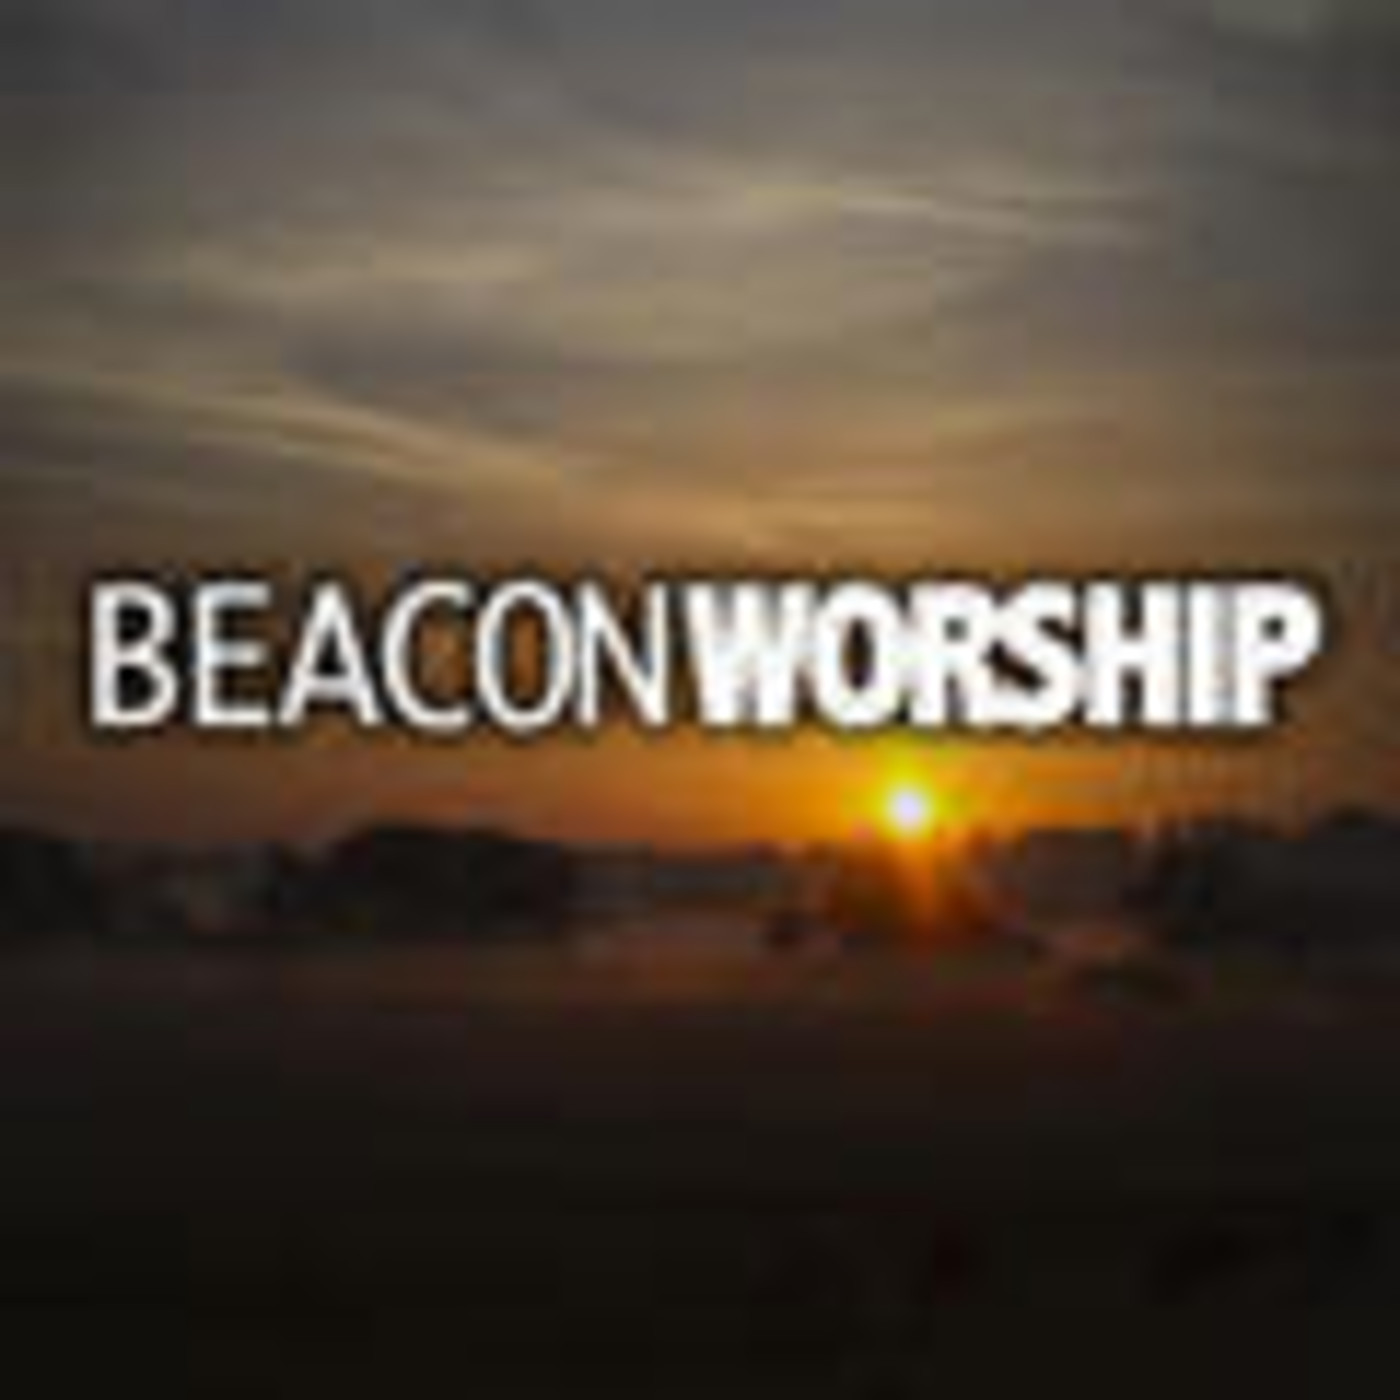 Worship Music from The Beacon